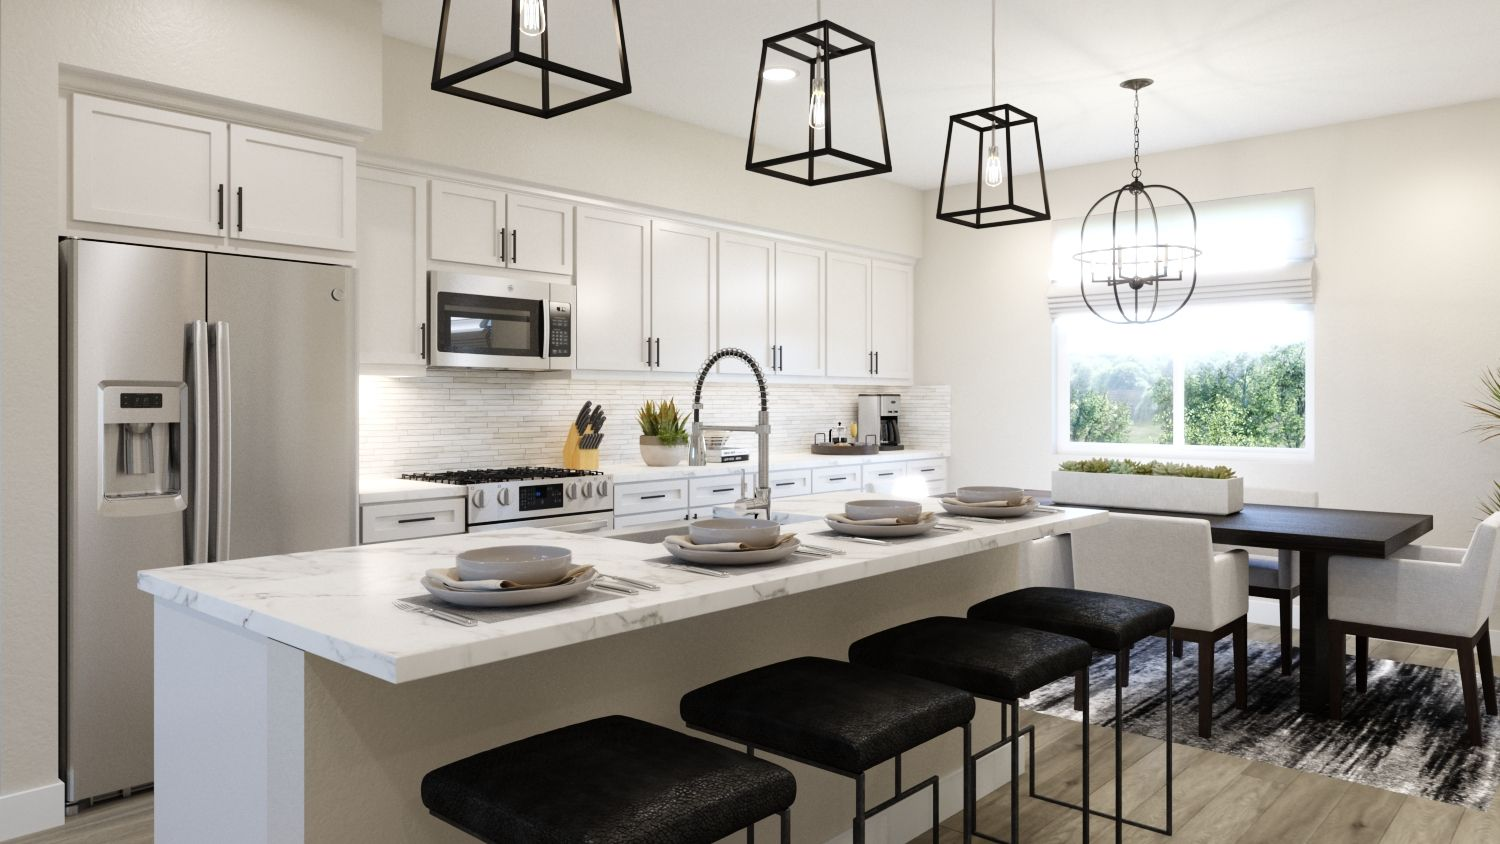 Kitchen featured in the Plan 2 By Melia in Orange County, CA